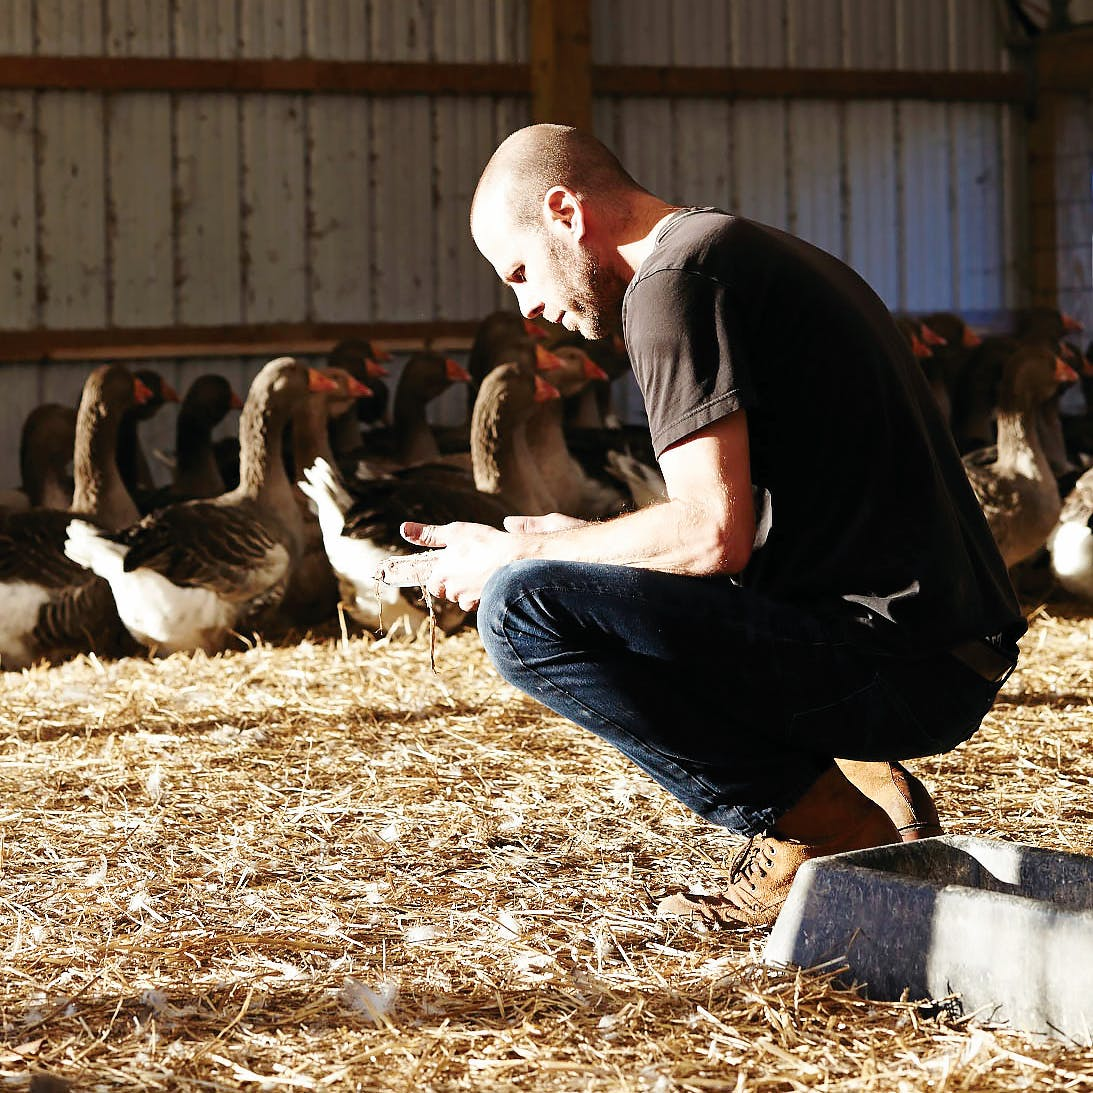 Sunlit man crouching in a barn with geese